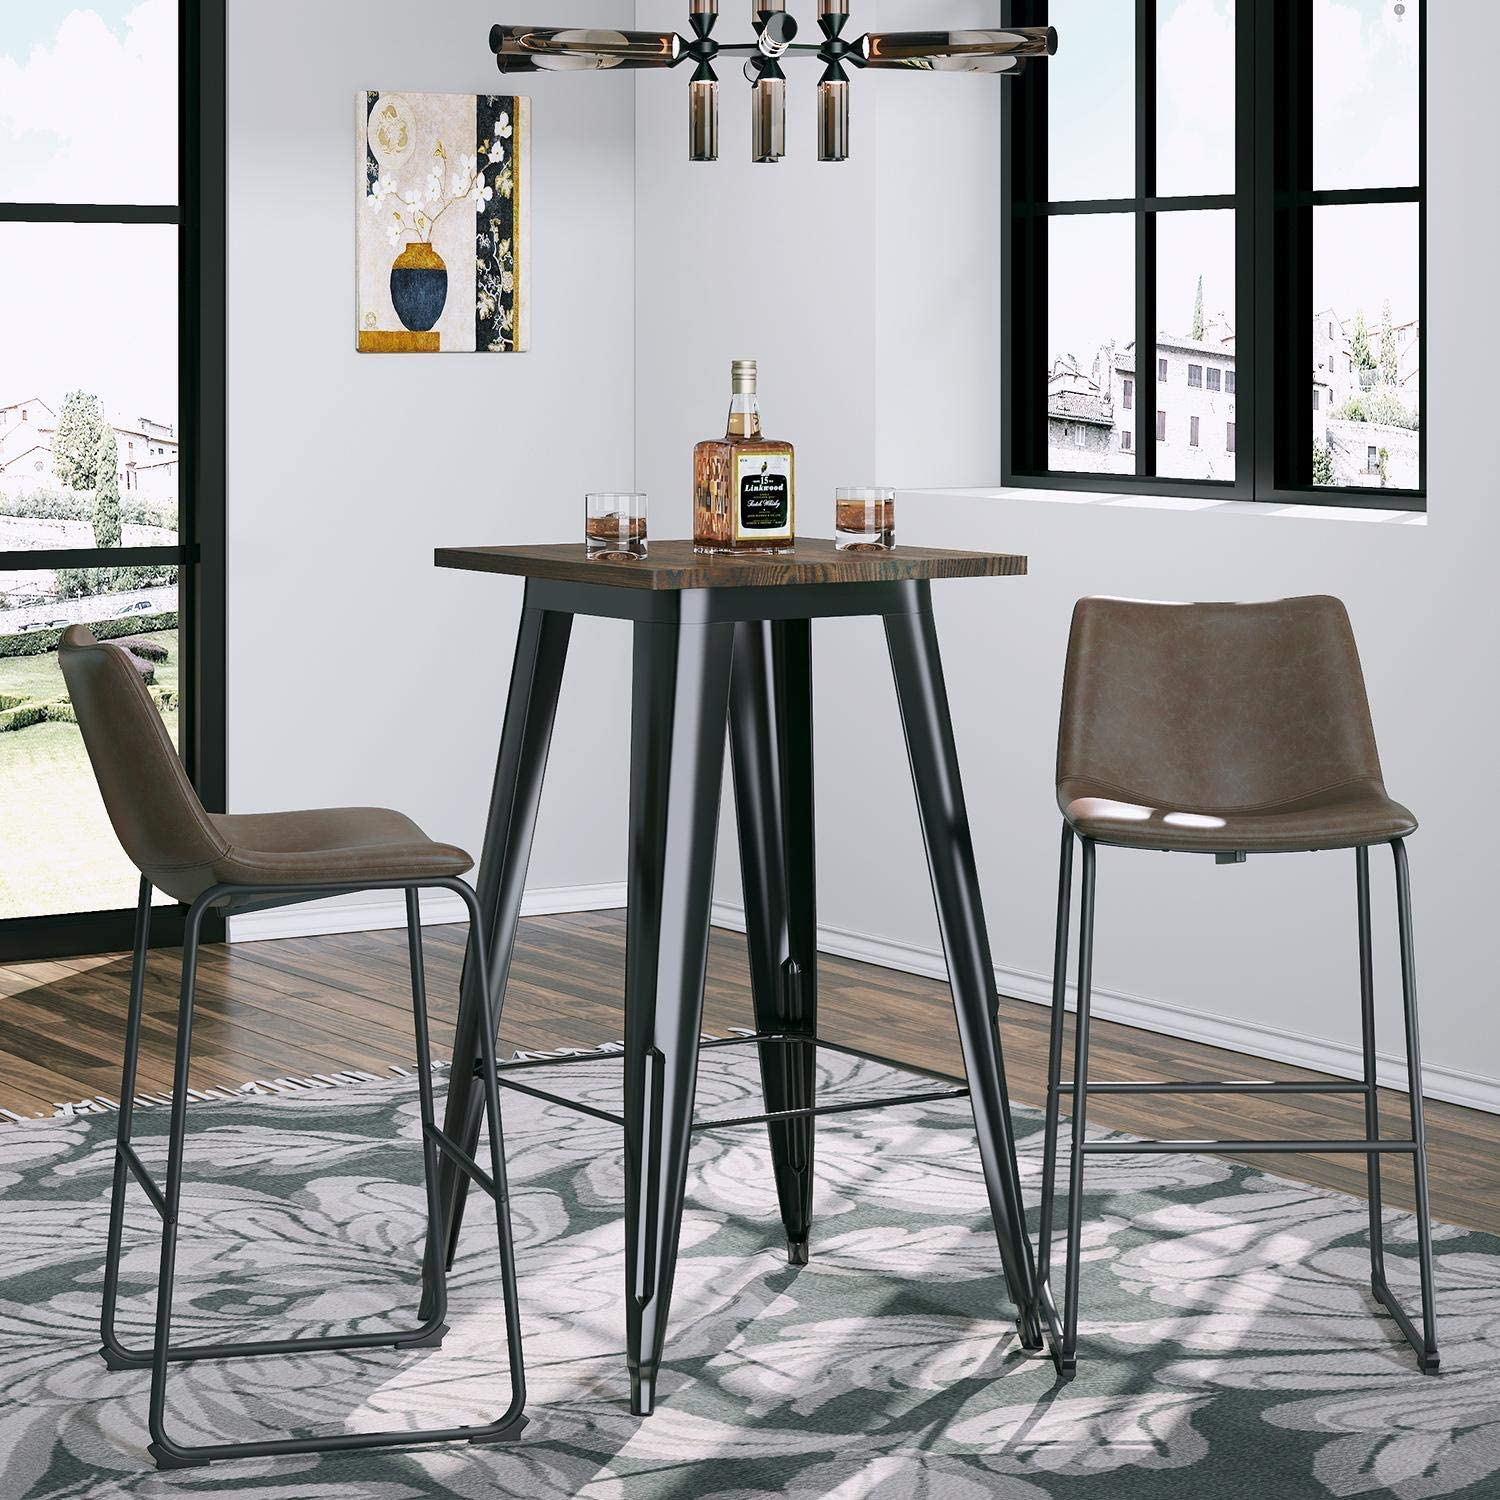 VIPEK 29 Brown Mid Century Modern Bar Stools /& Dining Table Set PU Faux Chair for Bistro Cafe Restaurant Kitchen Dining Room Patio Farmhouse Bar Table 41.3 High Table with Solid Wood